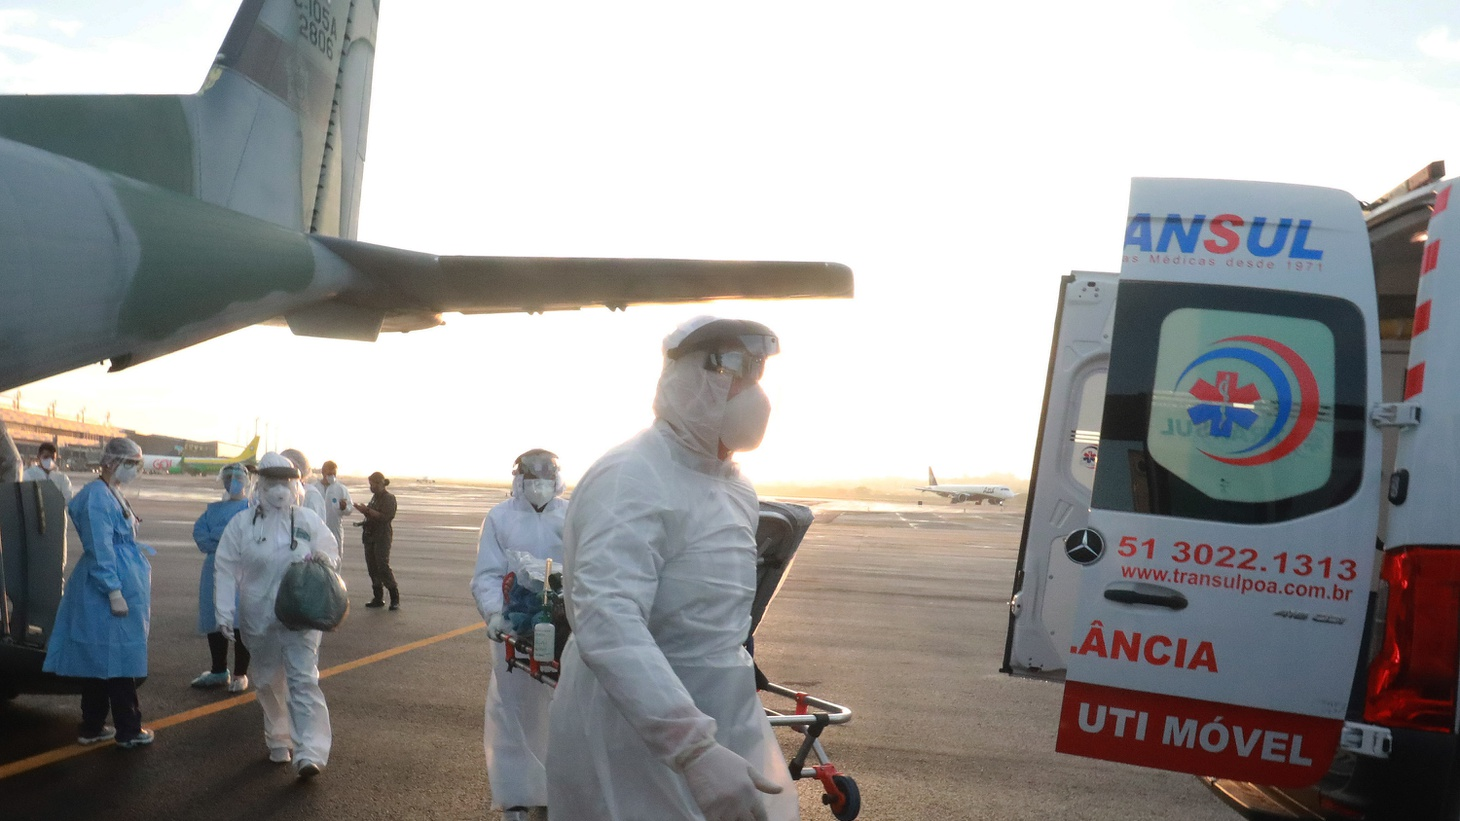 Porto Alegre, Brazil - The Pan American Health Organization (PAHO) detected three strains of SARS-CoV2 in Latin American countries, which had been reported in Brazil, the United Kingdom, and South Africa.